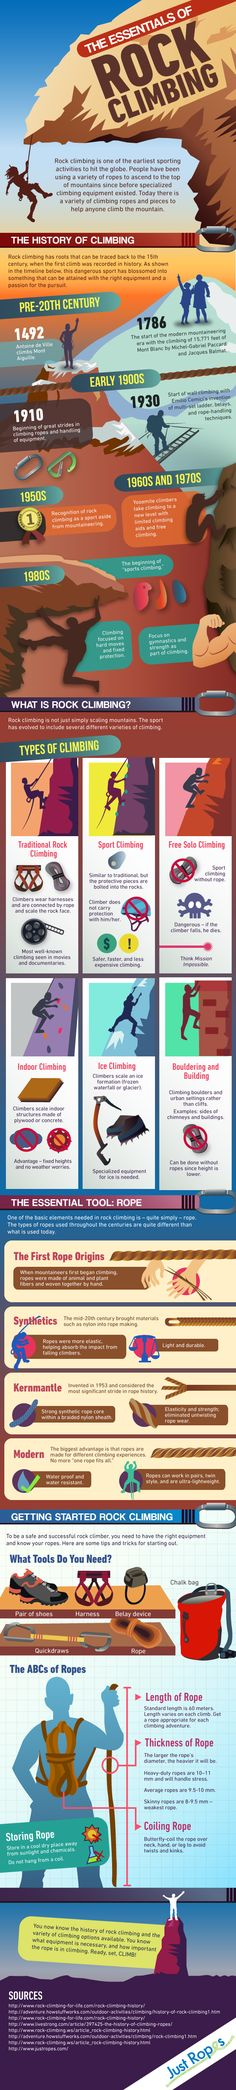 Essentials of Rock Climbing Infographic by Just Ropes.